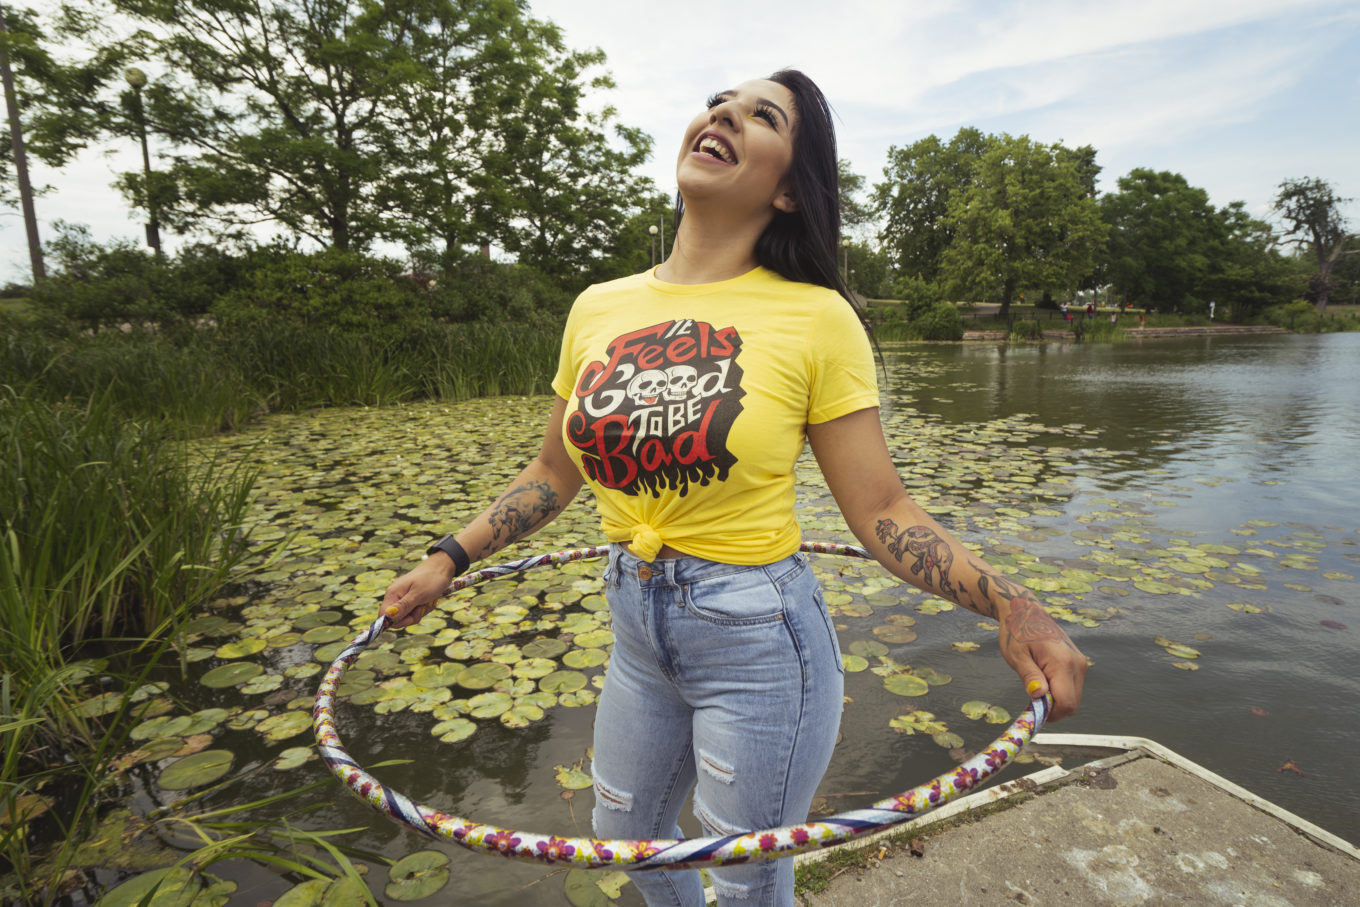 Woman wearing a t-shirt, next to a lake, smiling and hula hooping